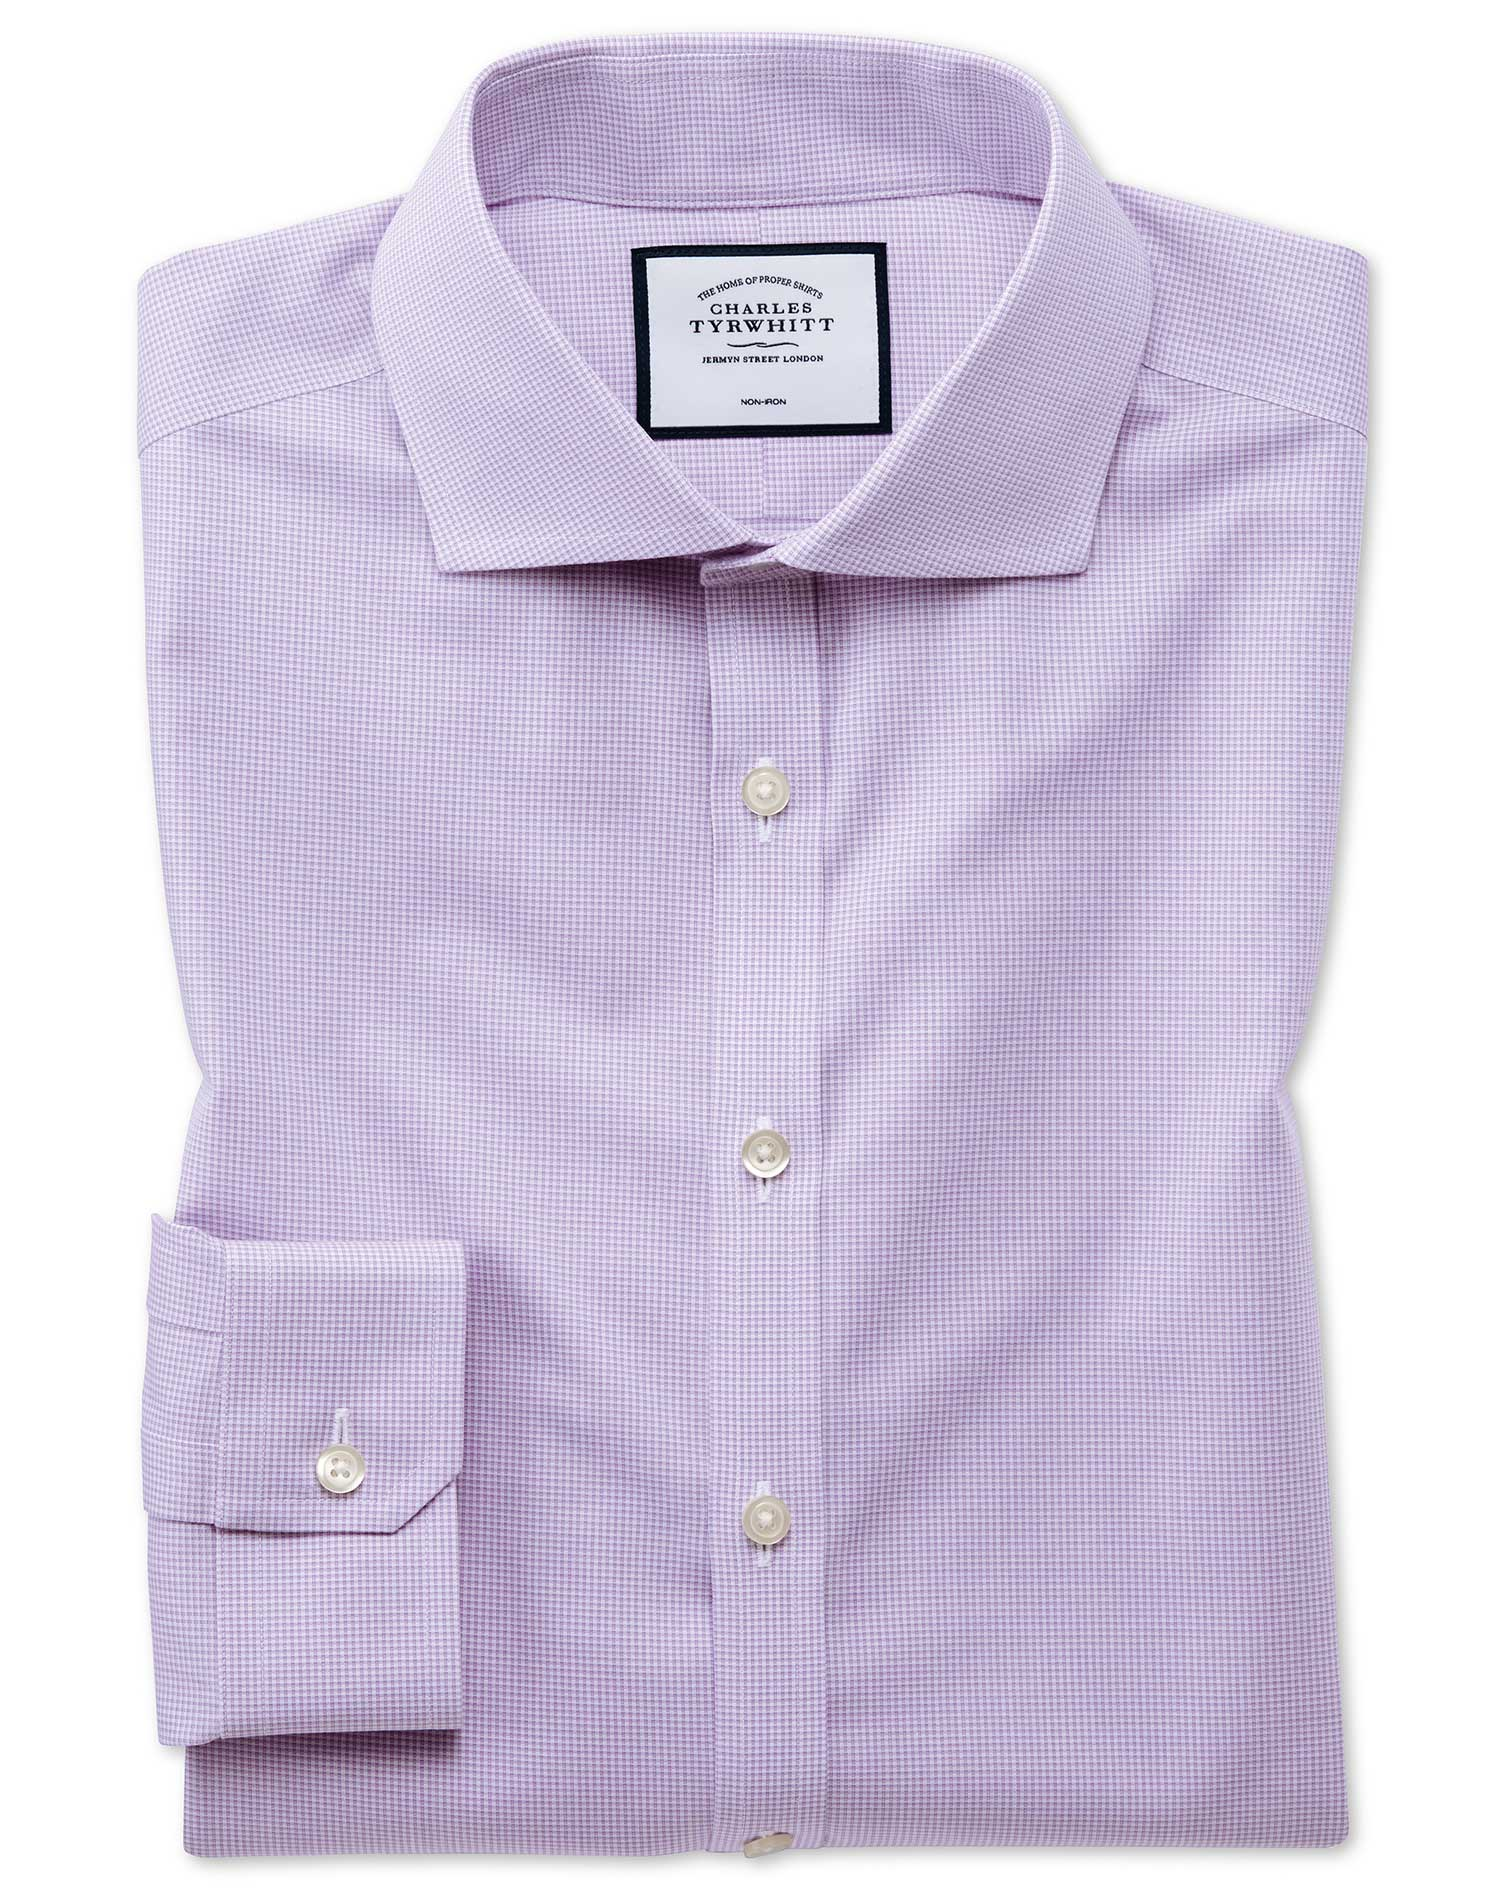 Super Slim Fit Non-Iron 4-Way Stretch Lilac Check Cotton Formal Shirt Single Cuff Size 15/34 by Char